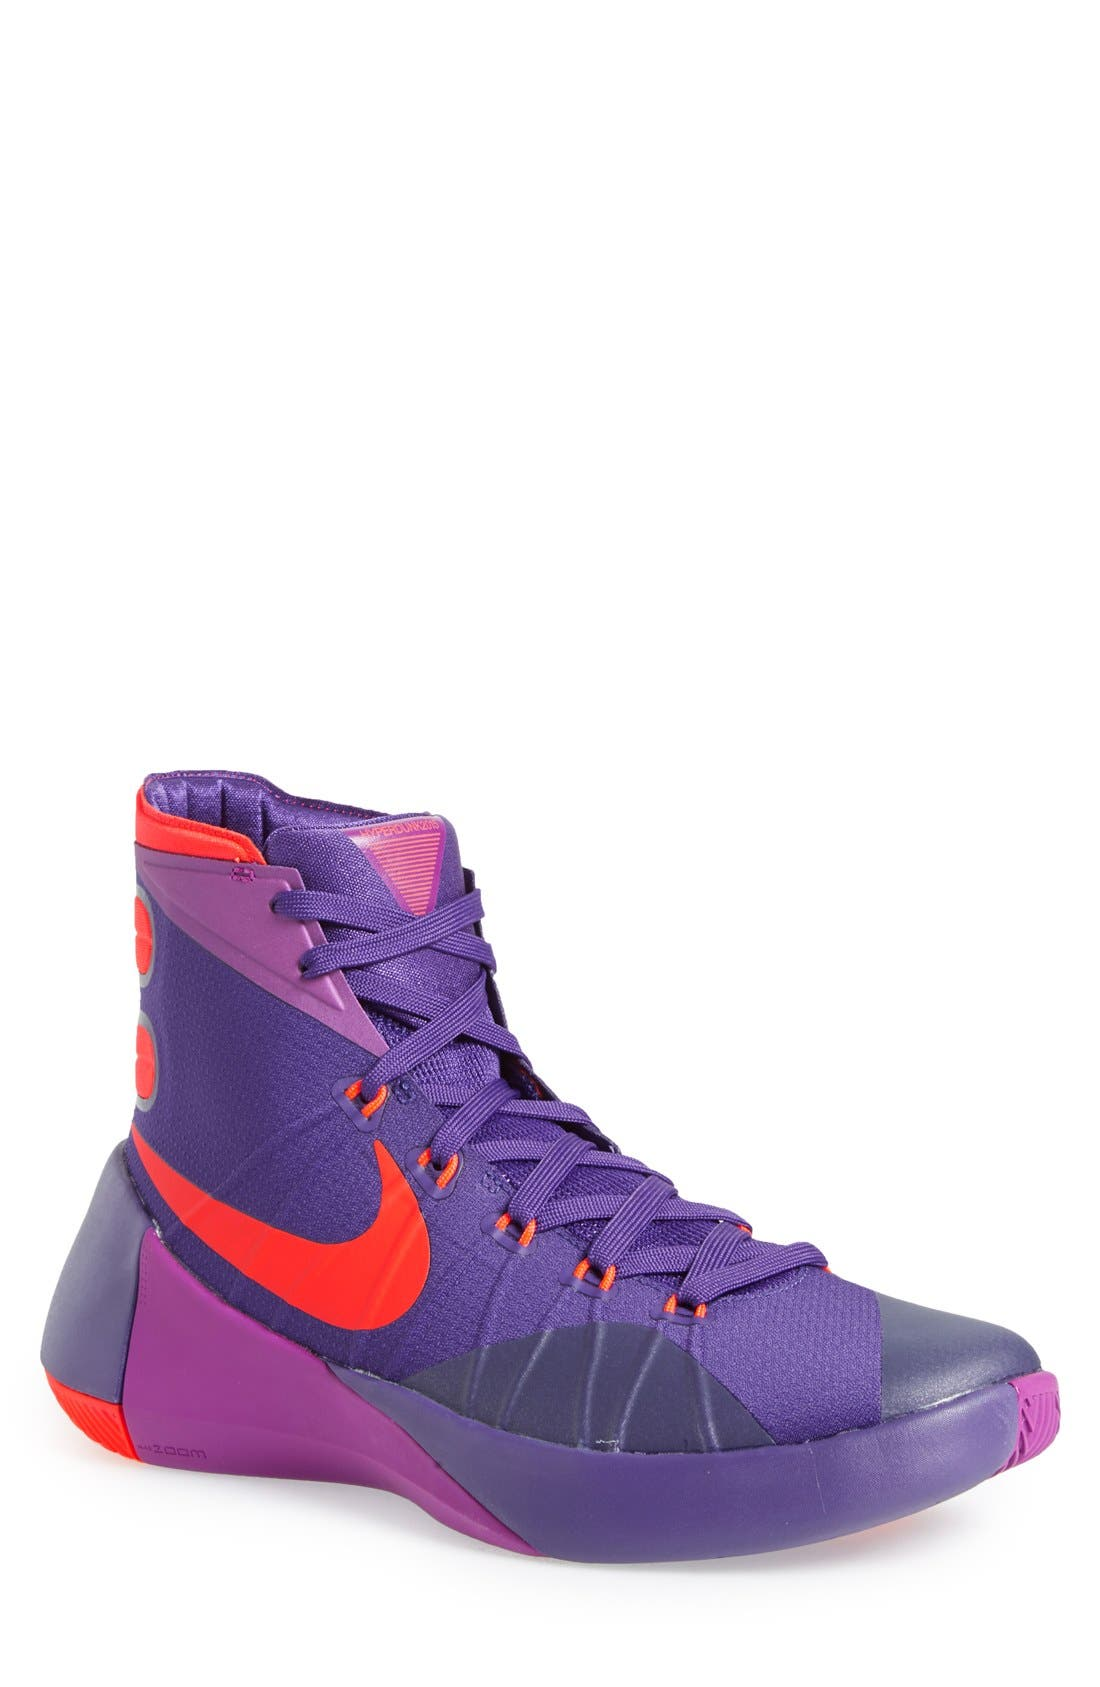 Nike Hyperdunk 2015 Boys Basketball Shoe  cd2bbf6be73